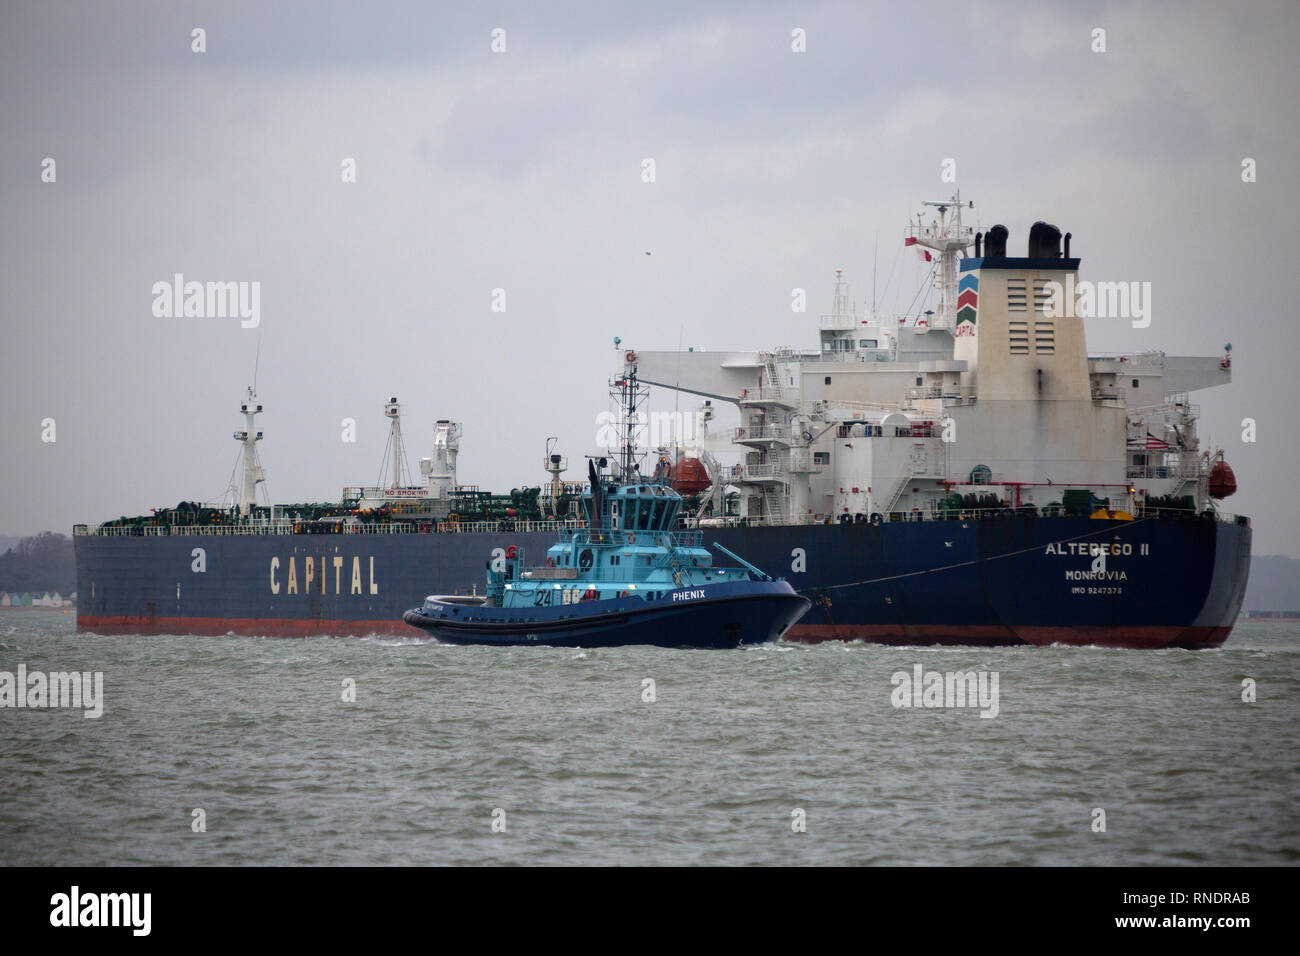 Voith tractor tug, Tanker, heavily, laden, oil, maneuver, maneuvering, The Solent, Southampton, Fawley, refinery, Isle of Wight, Hampshire, England, - Stock Image